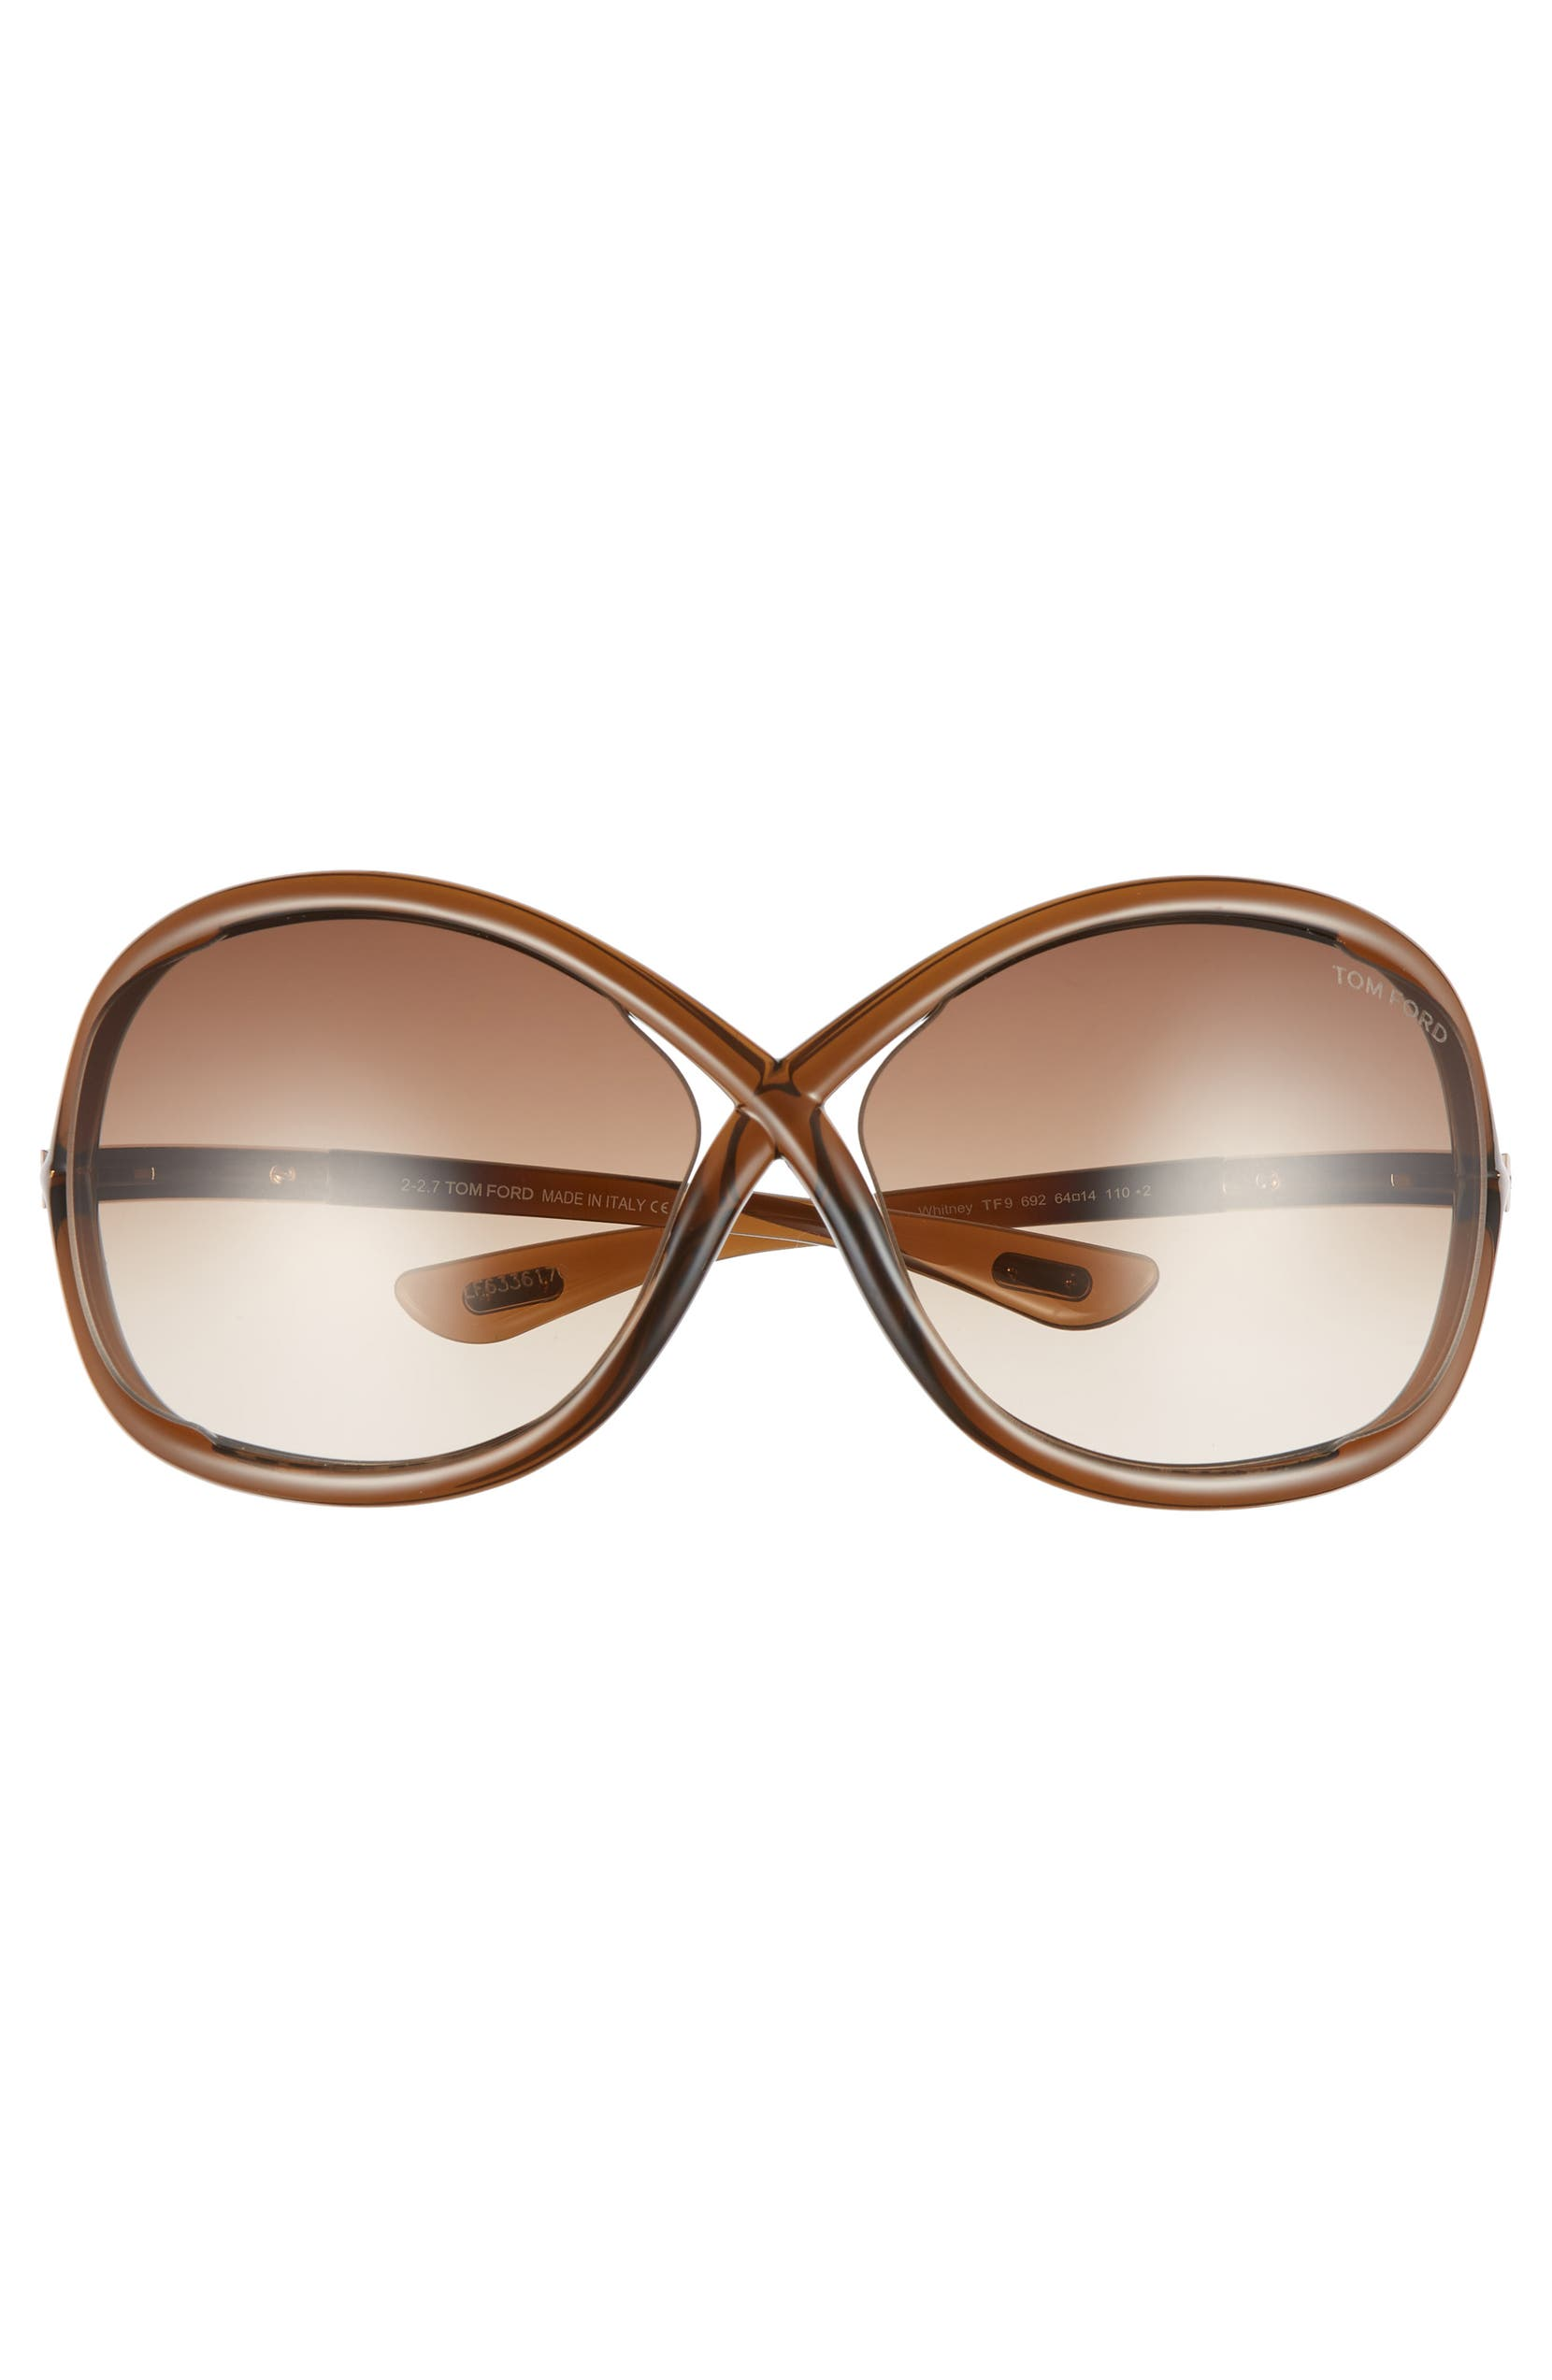 800f247a67 Tom Ford  Whitney  64mm Open Side Sunglasses